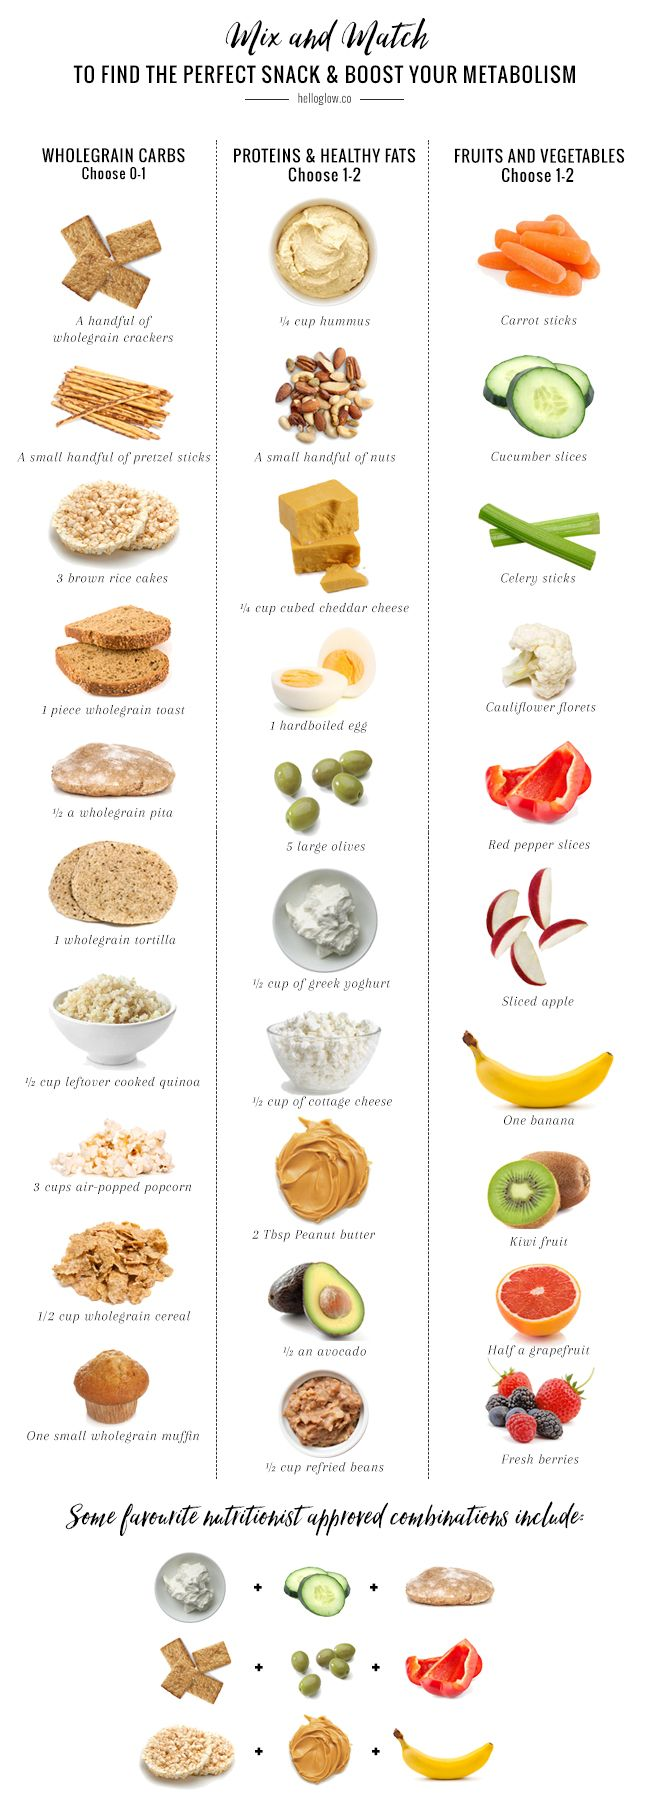 A Nutritionist Explains: How to Snack to Boost Metabolism | http://helloglow.co/how-to-snack-to-boost-metabolism/